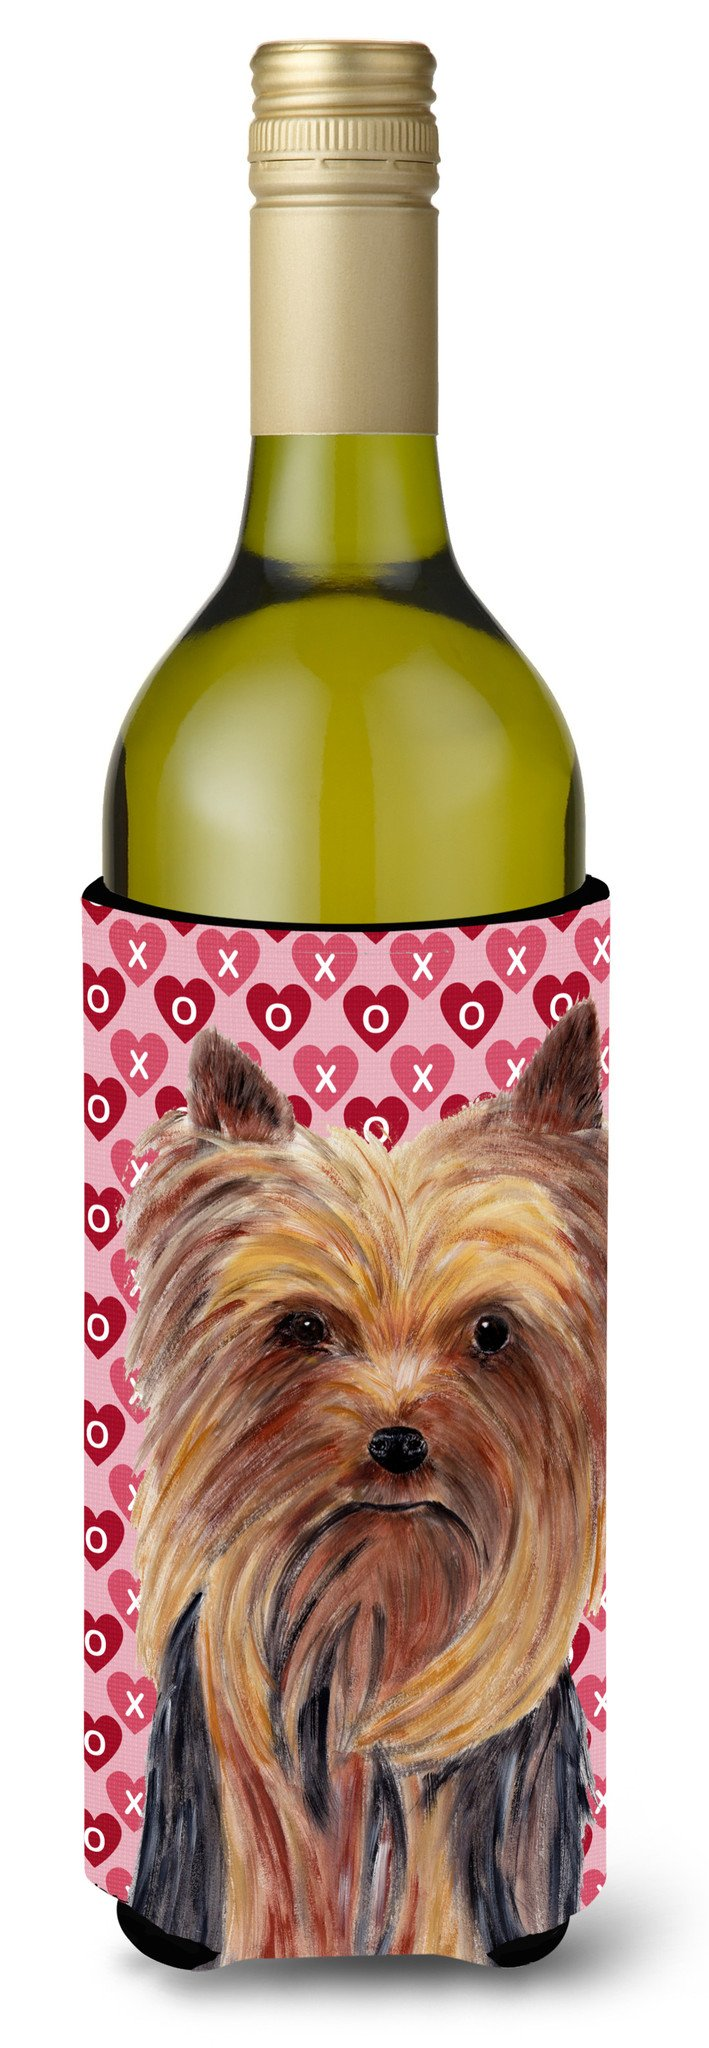 Yorkie Hearts Love and Valentine's Day Portrait Wine Bottle Beverage Insulator Beverage Insulator Hugger by Caroline's Treasures